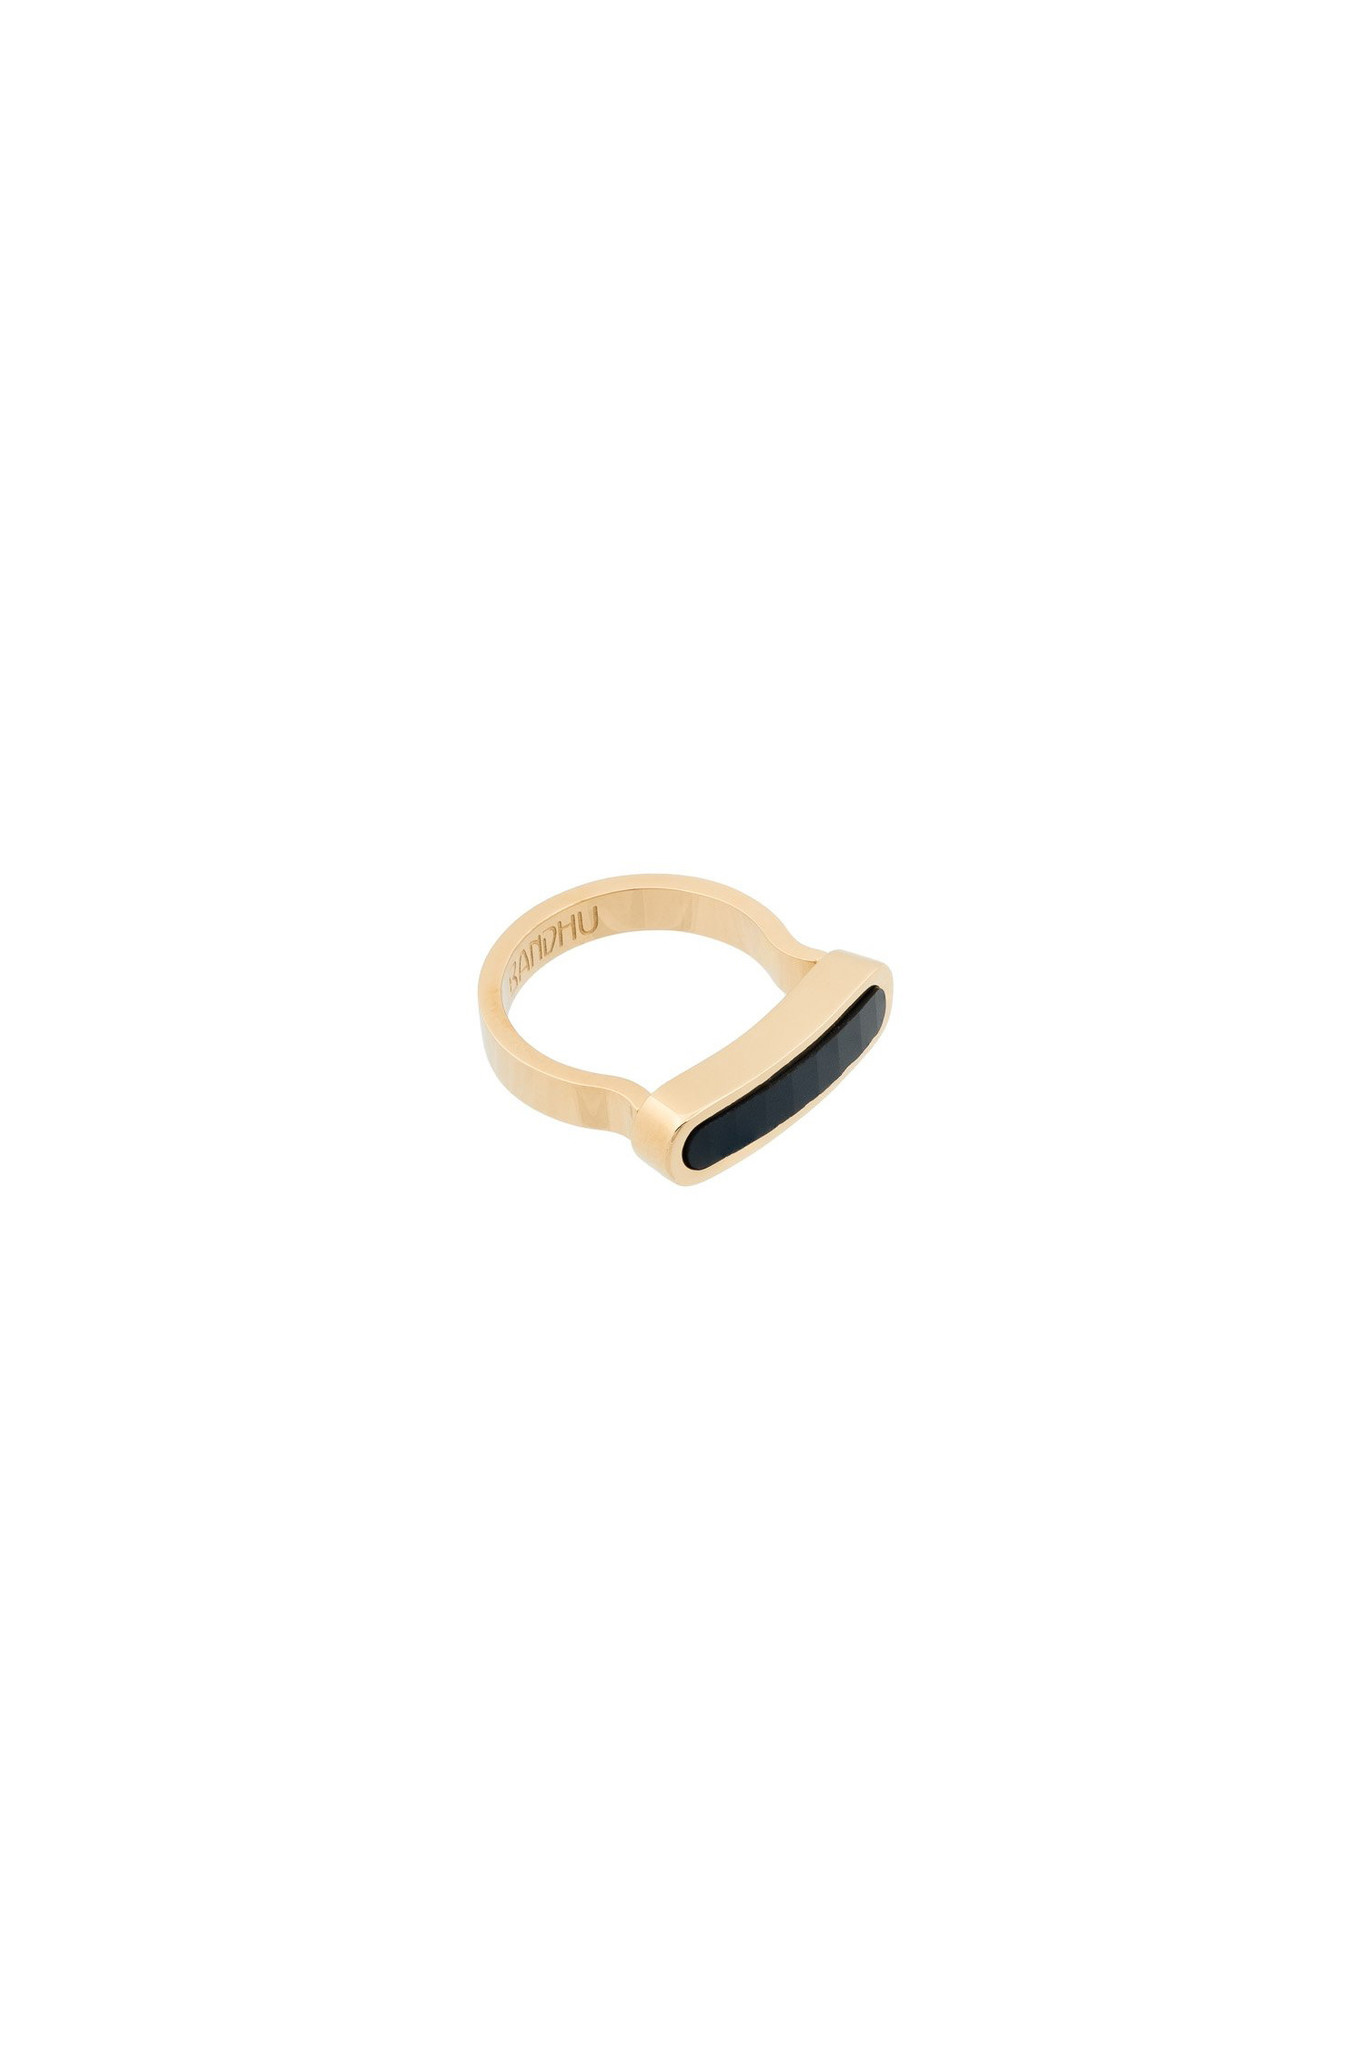 Energy Muse Ring - Gold with Black Onyx-1